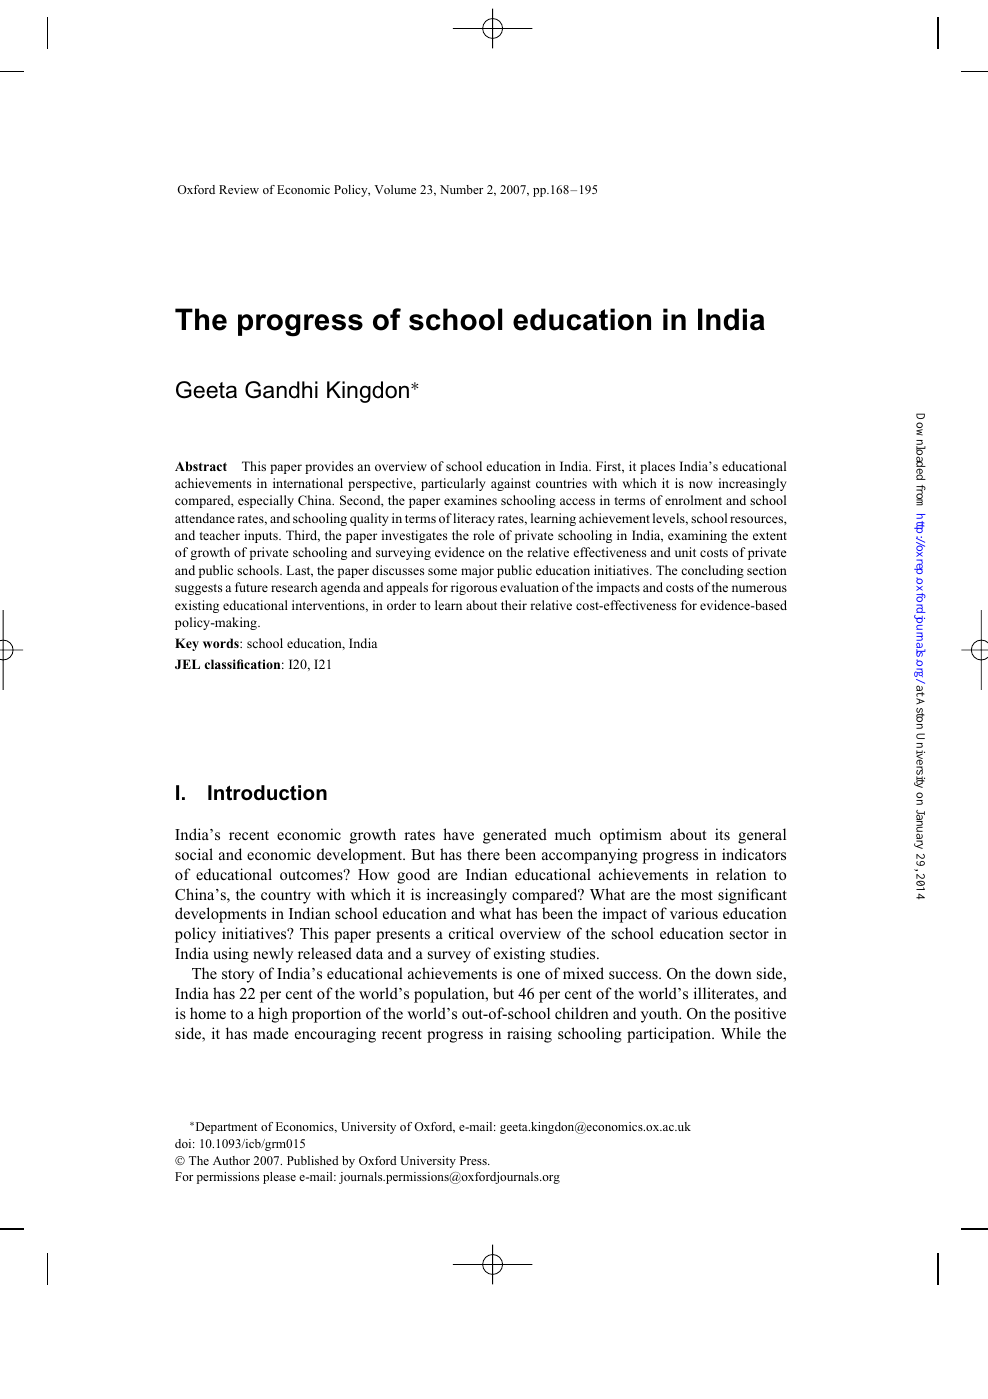 The progress of school education in India – topic of